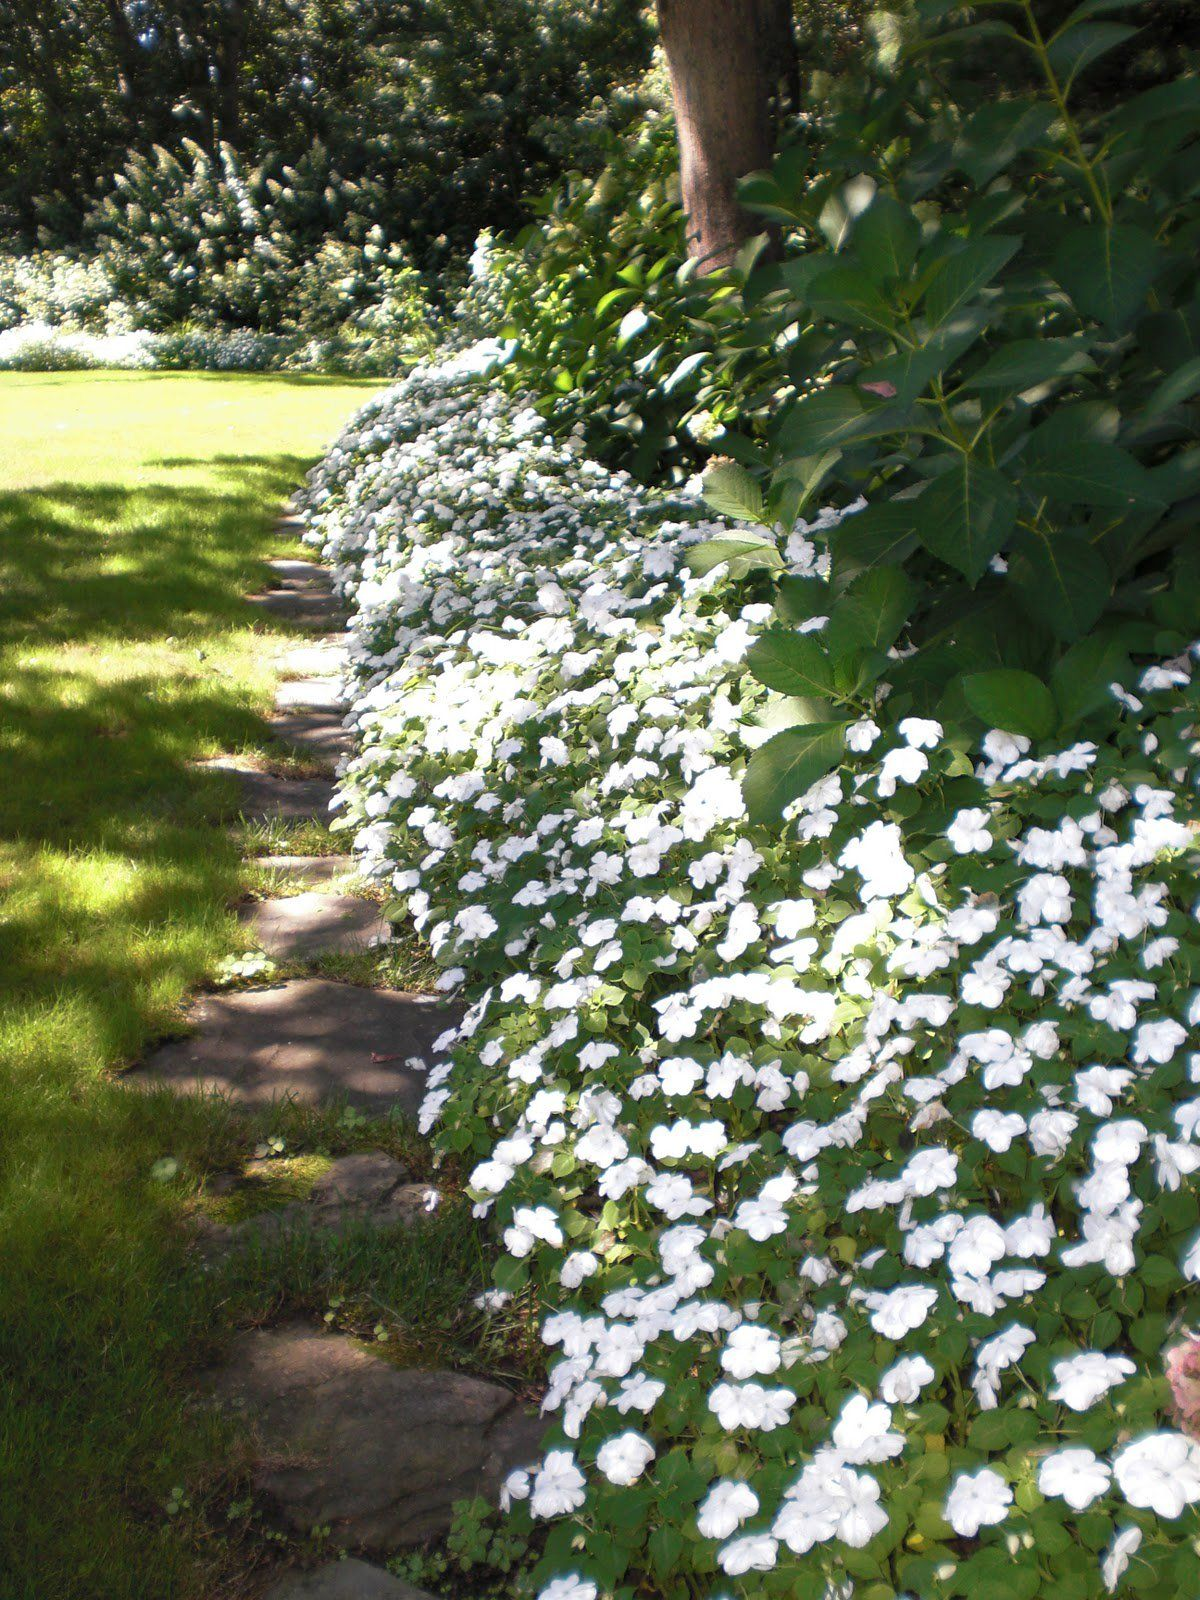 Pictures Of Red White Impatiens In The Yard Google Search